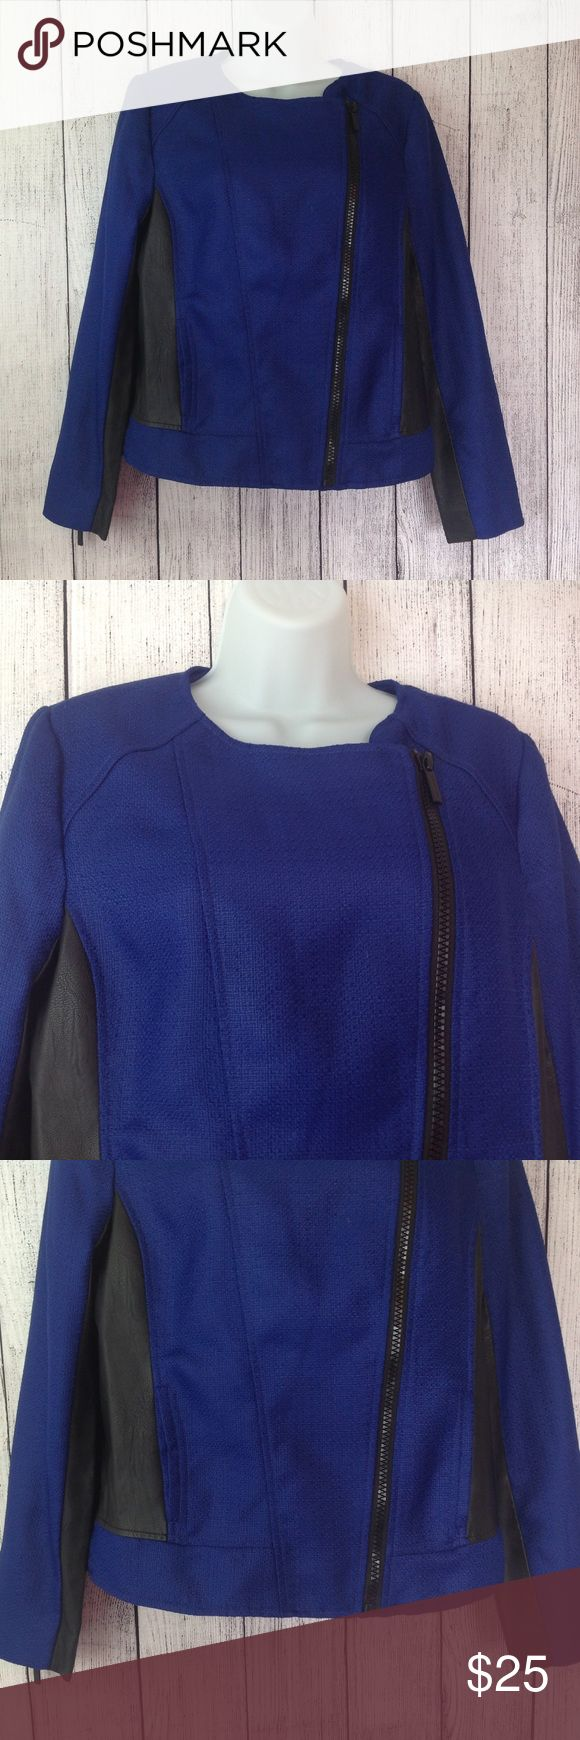 """MK Michael Kors Jacket Maker: MK Michael Kors ♥ Material: Polyester ♥ Color: Blue and Black ♥ Measured Size: Pit to pit- 19"""" Pit to cuff- 17"""" Shoulder to waist- 23""""  ♥ Tag Size:  8 ♥ Actual Size: 8 PLEASE CHECK YOUR ACTUAL MEASUREMENTS TO MAKE SURE IT IS THE RIGHT SIZE! THANKS! ♥ Condition: Excellent Used Condition ♥ Item #: (office use only) A  Follow us on Instagram and facebook for coupon codes!  INSTAGRAM-thehausofvintage1984 Facebook- intergalactic haus of vintage 1984 or…"""